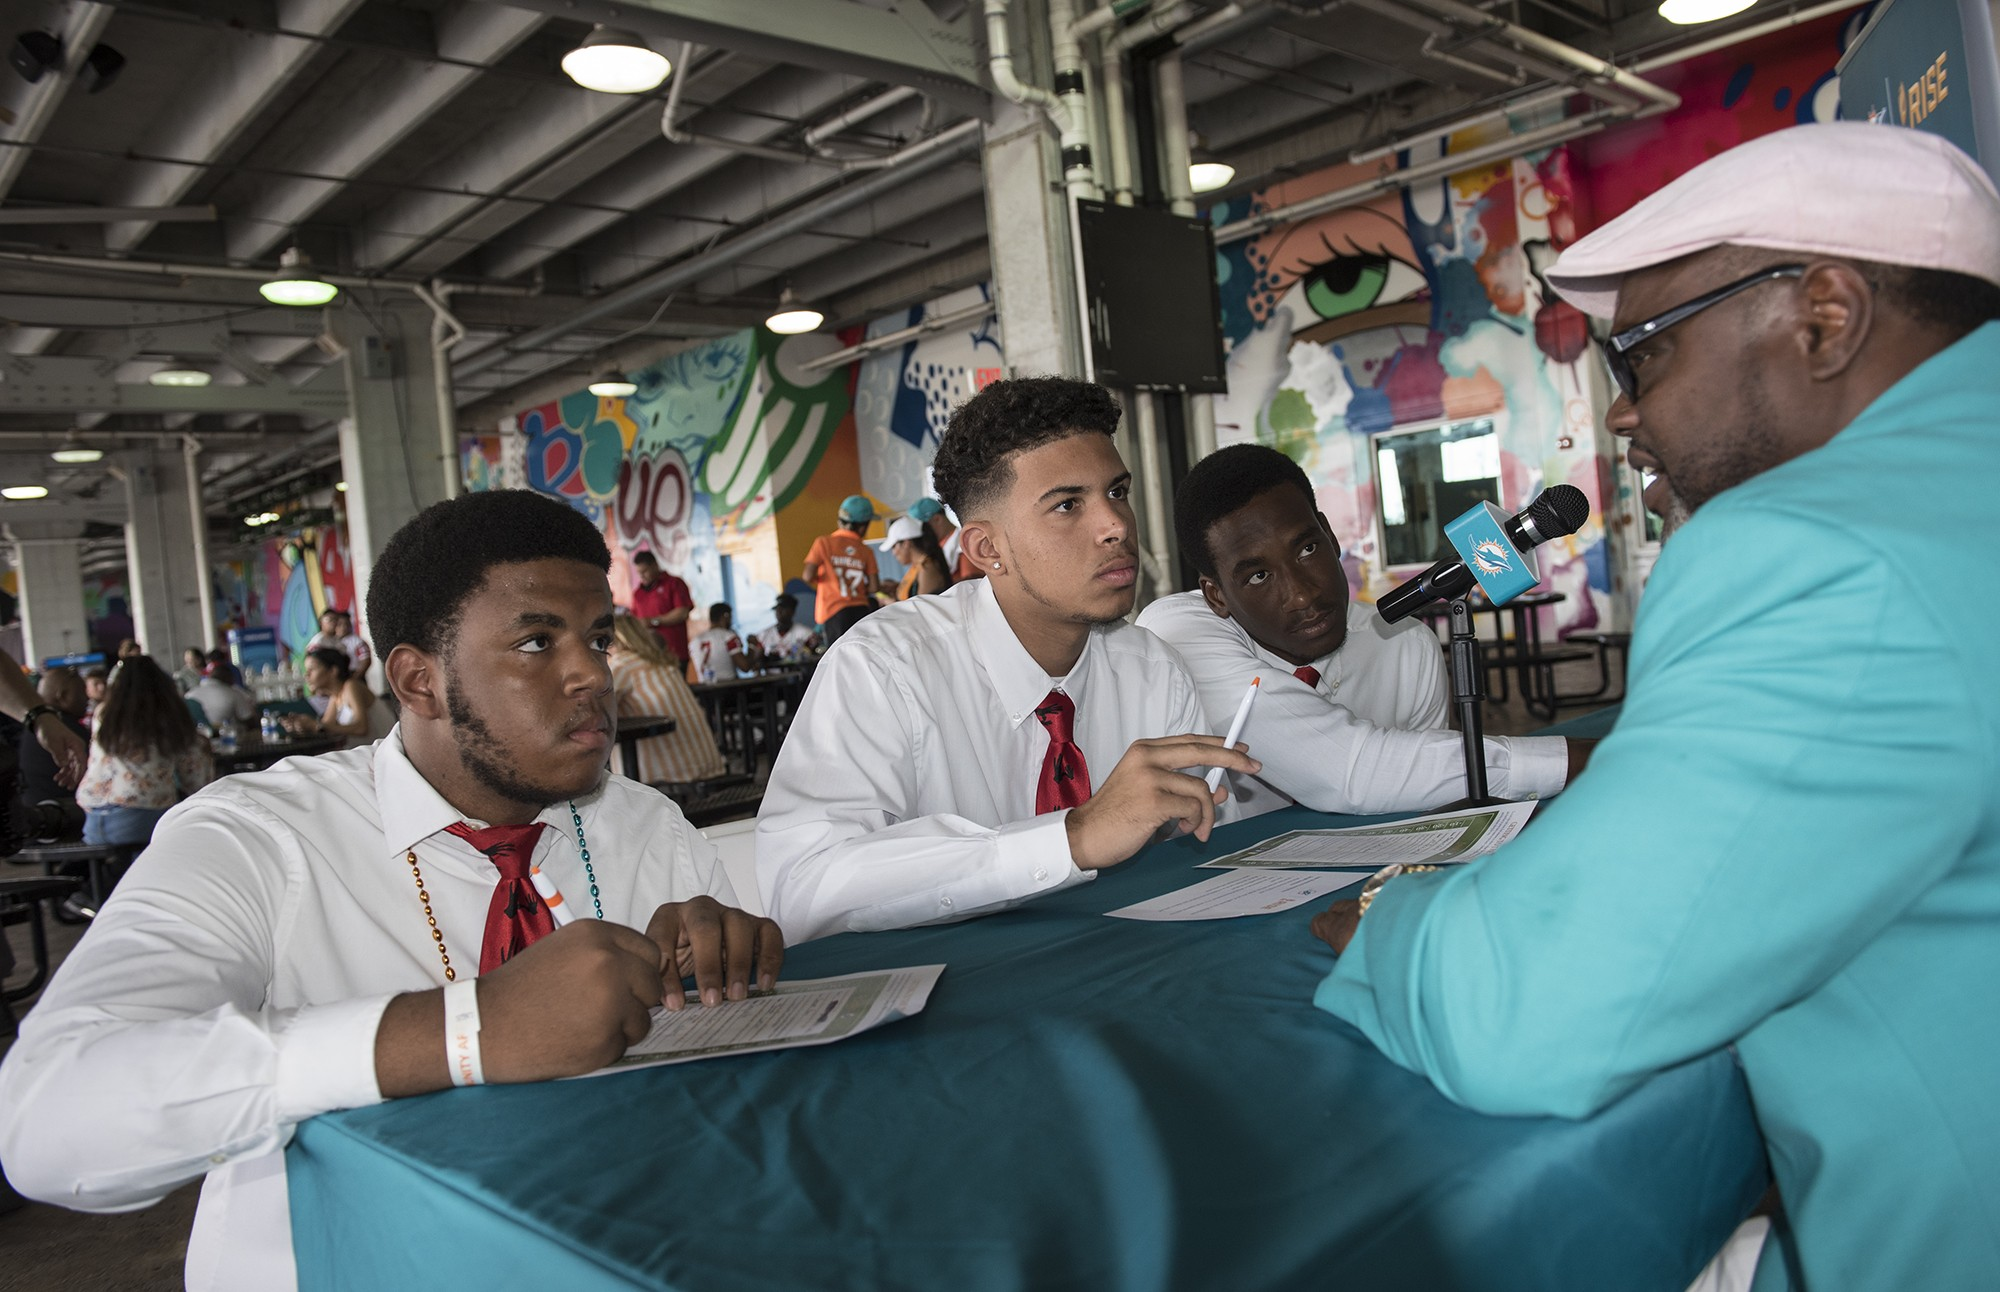 Miami Dolphins Alumni Mark Duper (1982-1992) talk with North Miami Senior High students McKlein Desaille, Ariel Soto and Stephen Pierre-Francois at the RISE tailgate party prior to the New York Jets Miami Dolphins game on Sunday, Oct. 22, 2017, in Miami Gardens, Fla. (Donald Edgar/El Latino Digital)